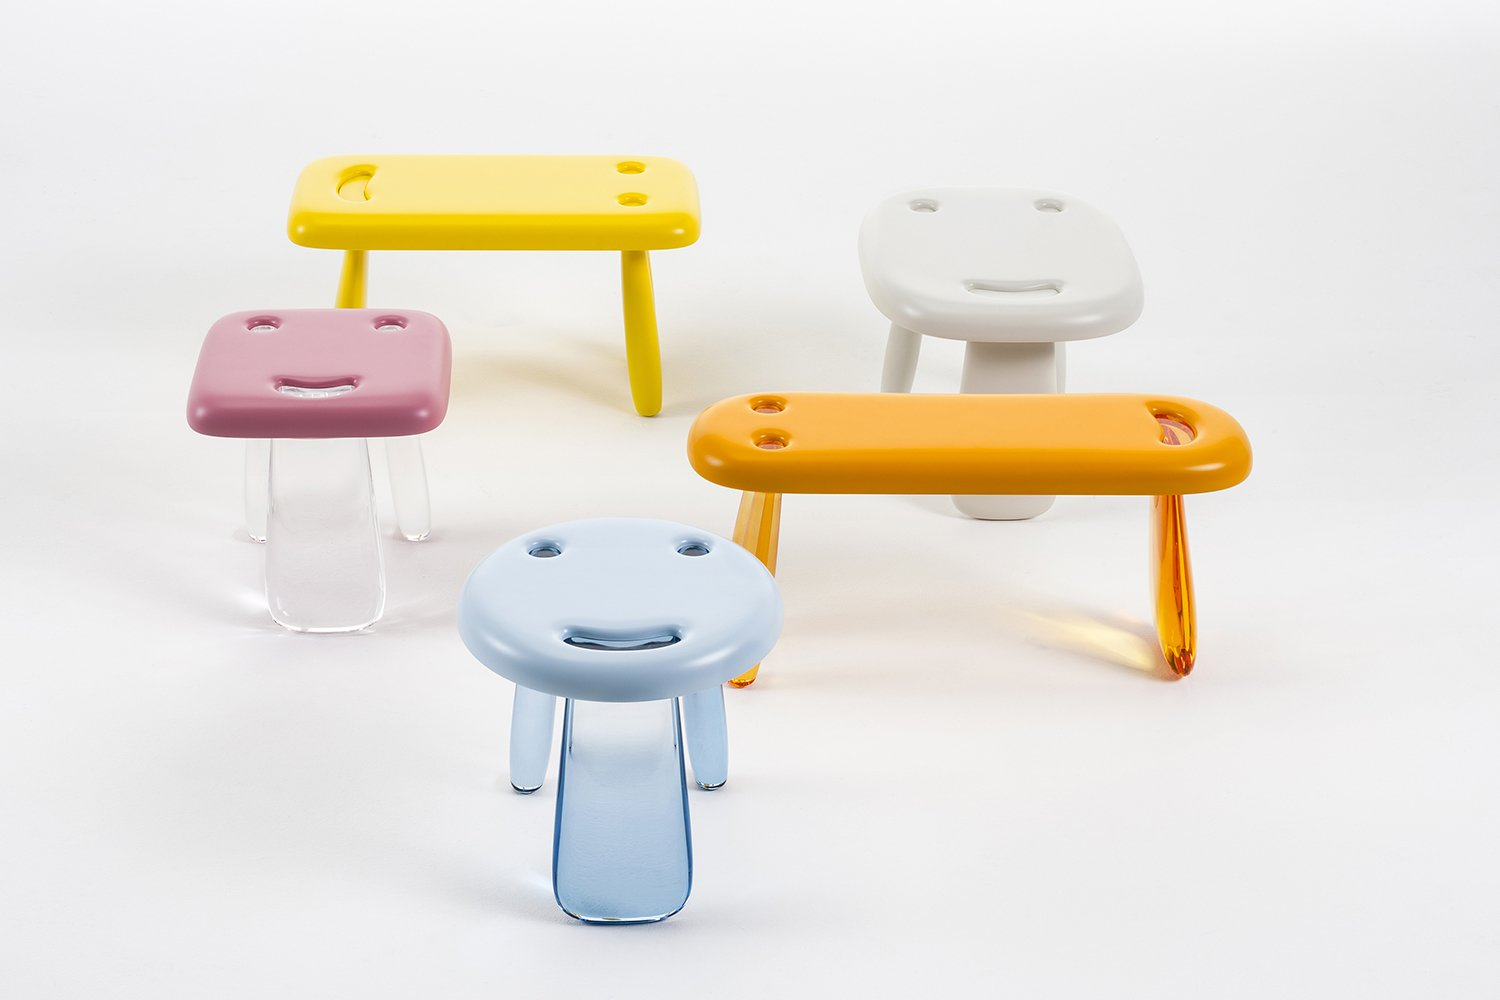 Smile seating by Nendo for Kartell  Kartell Takes on the Rocking Horse with a Super Kids' Line by Allie Weiss